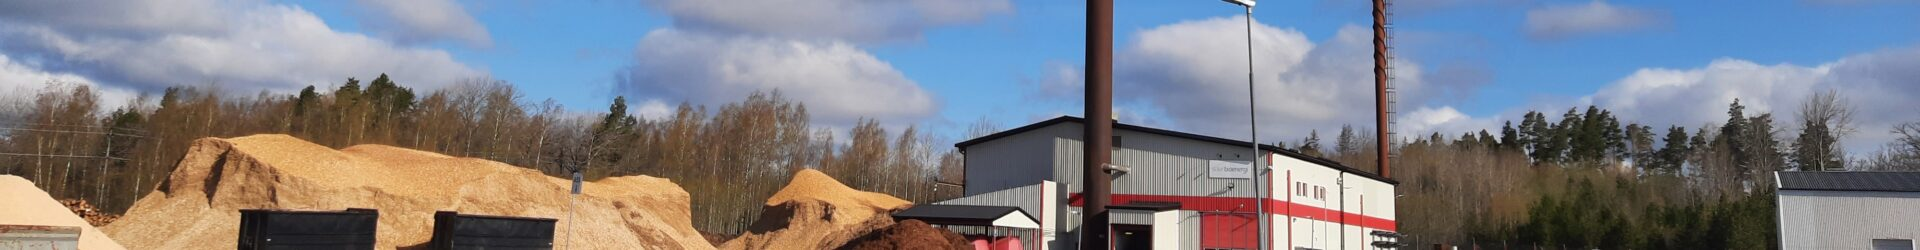 Solör Bioenergi to upgrade additional bioheat plants with ORC's from Againity